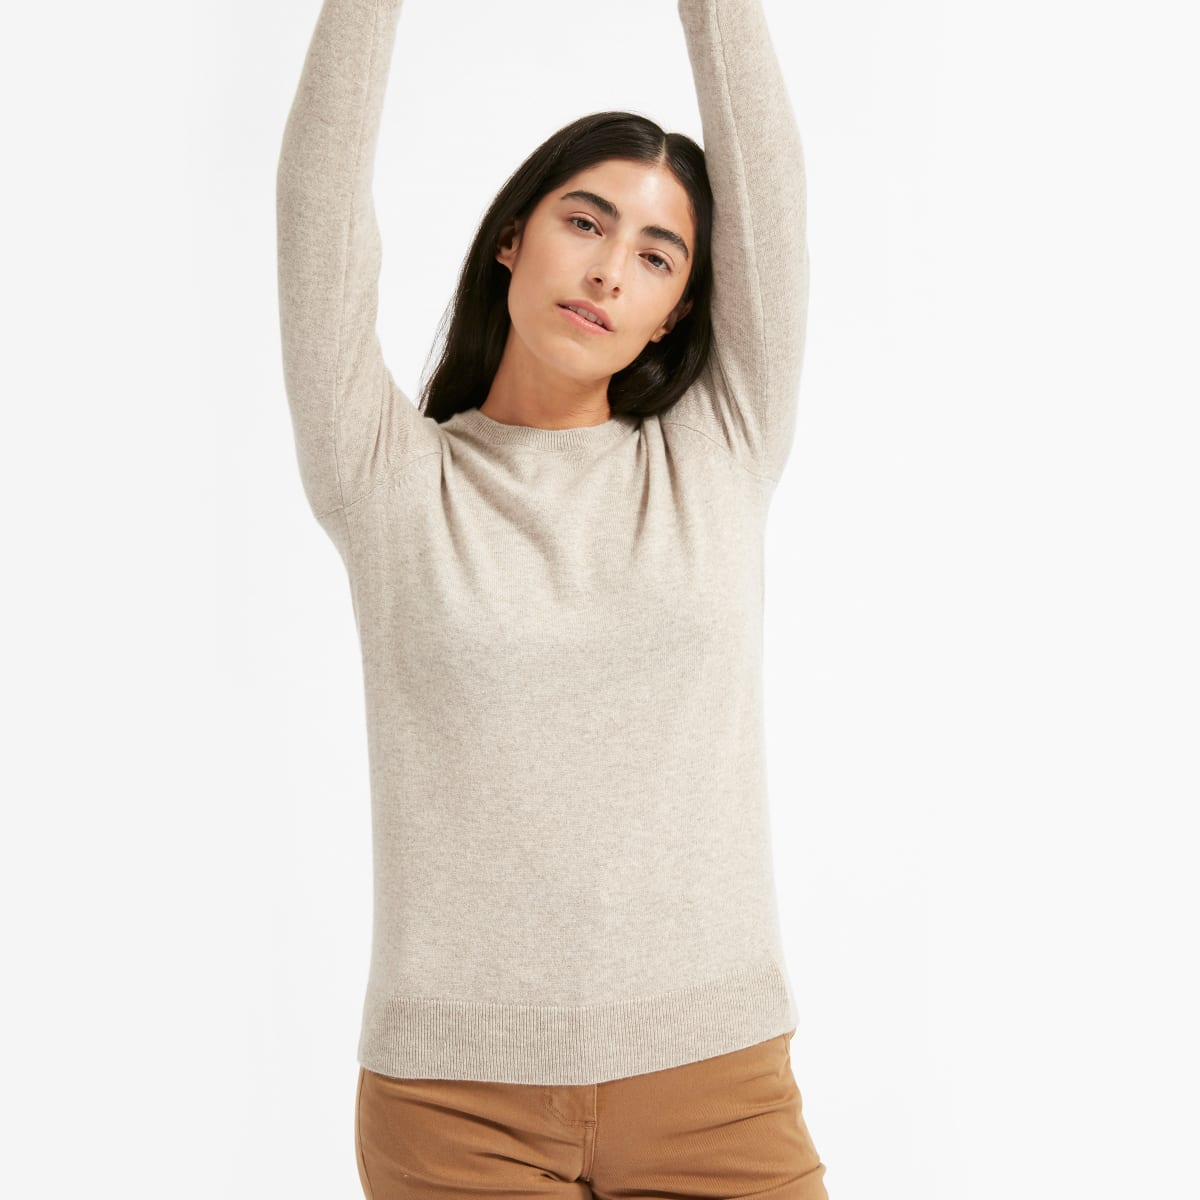 Everlane: Cashmere Sweater 30% Off